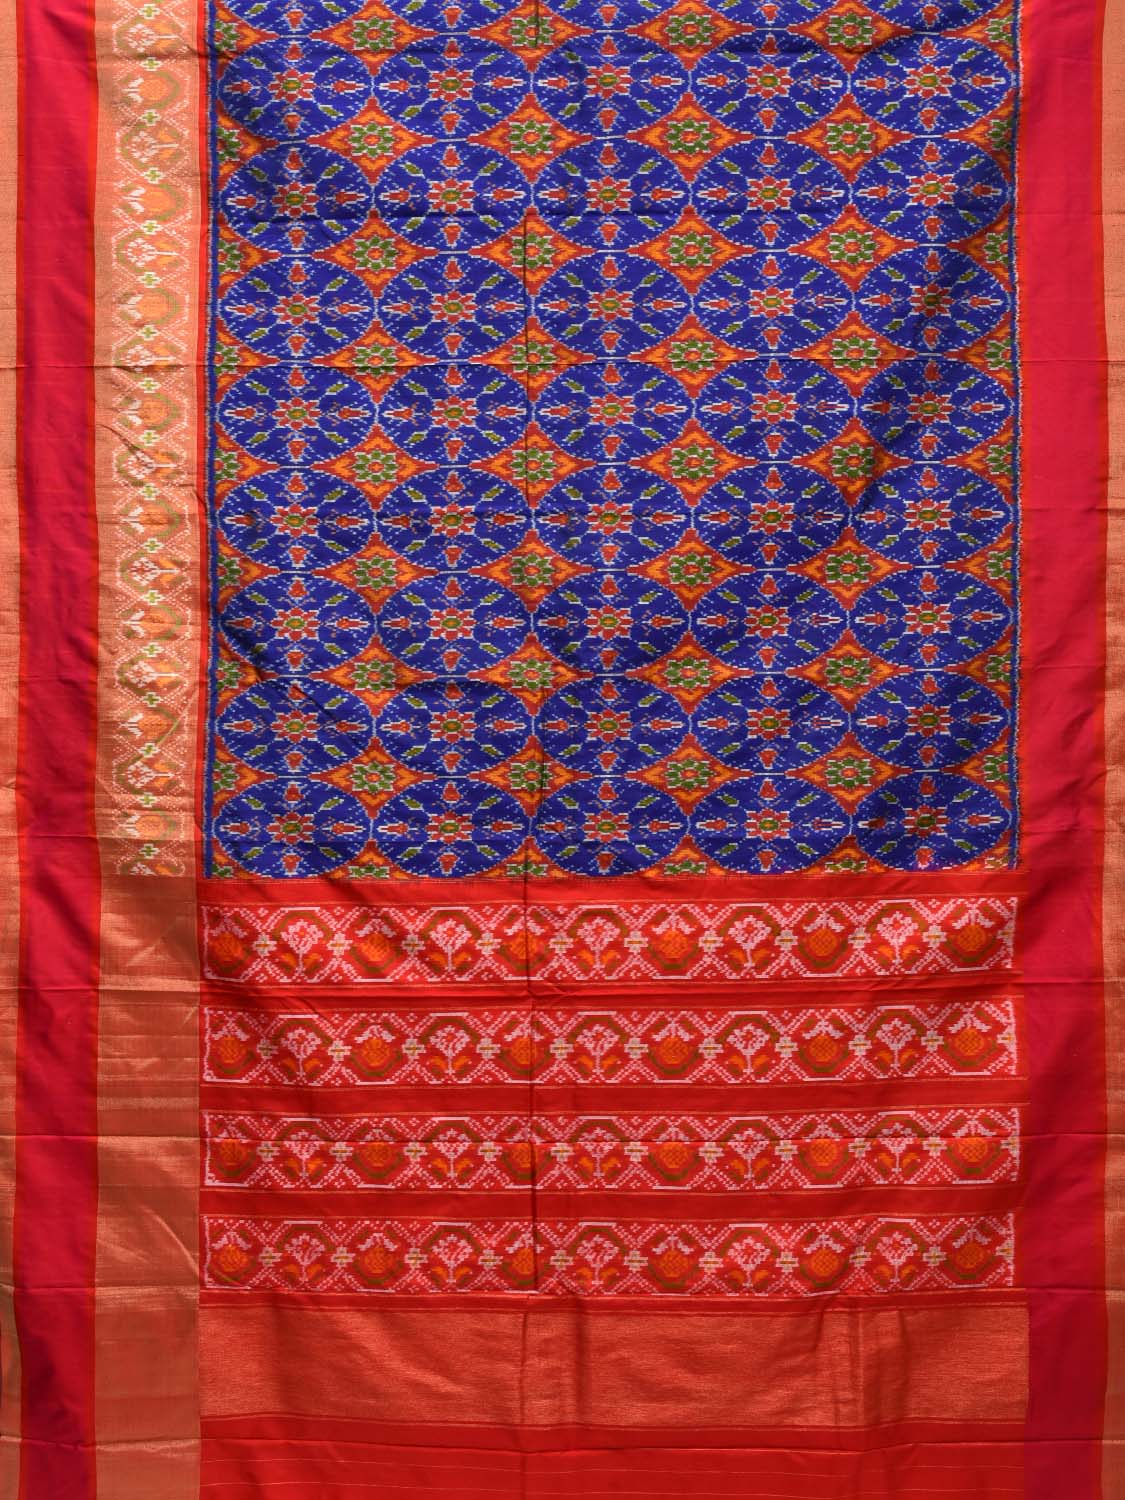 Blue and Red Pochampally Single Ikat Silk Handloom Saree with All Over Design i0554